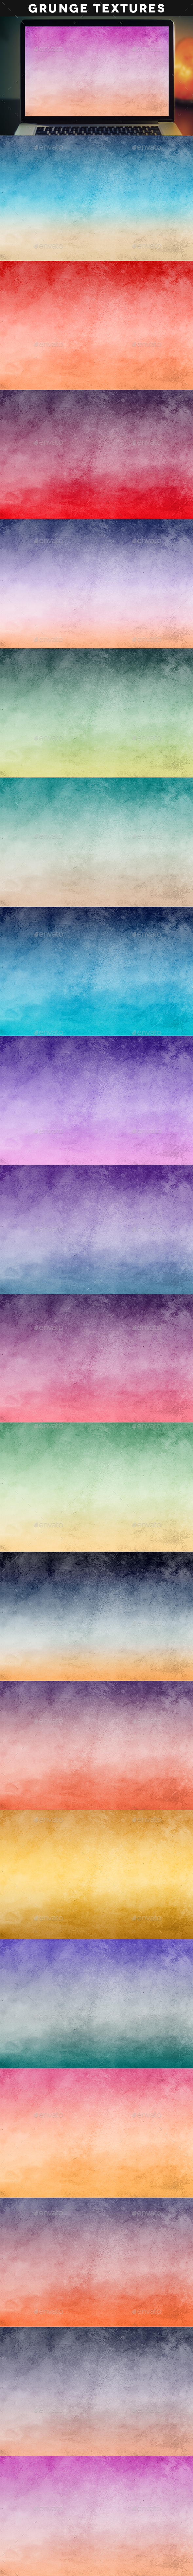 Grunge Sunsets And Sunrises - Abstract Backgrounds